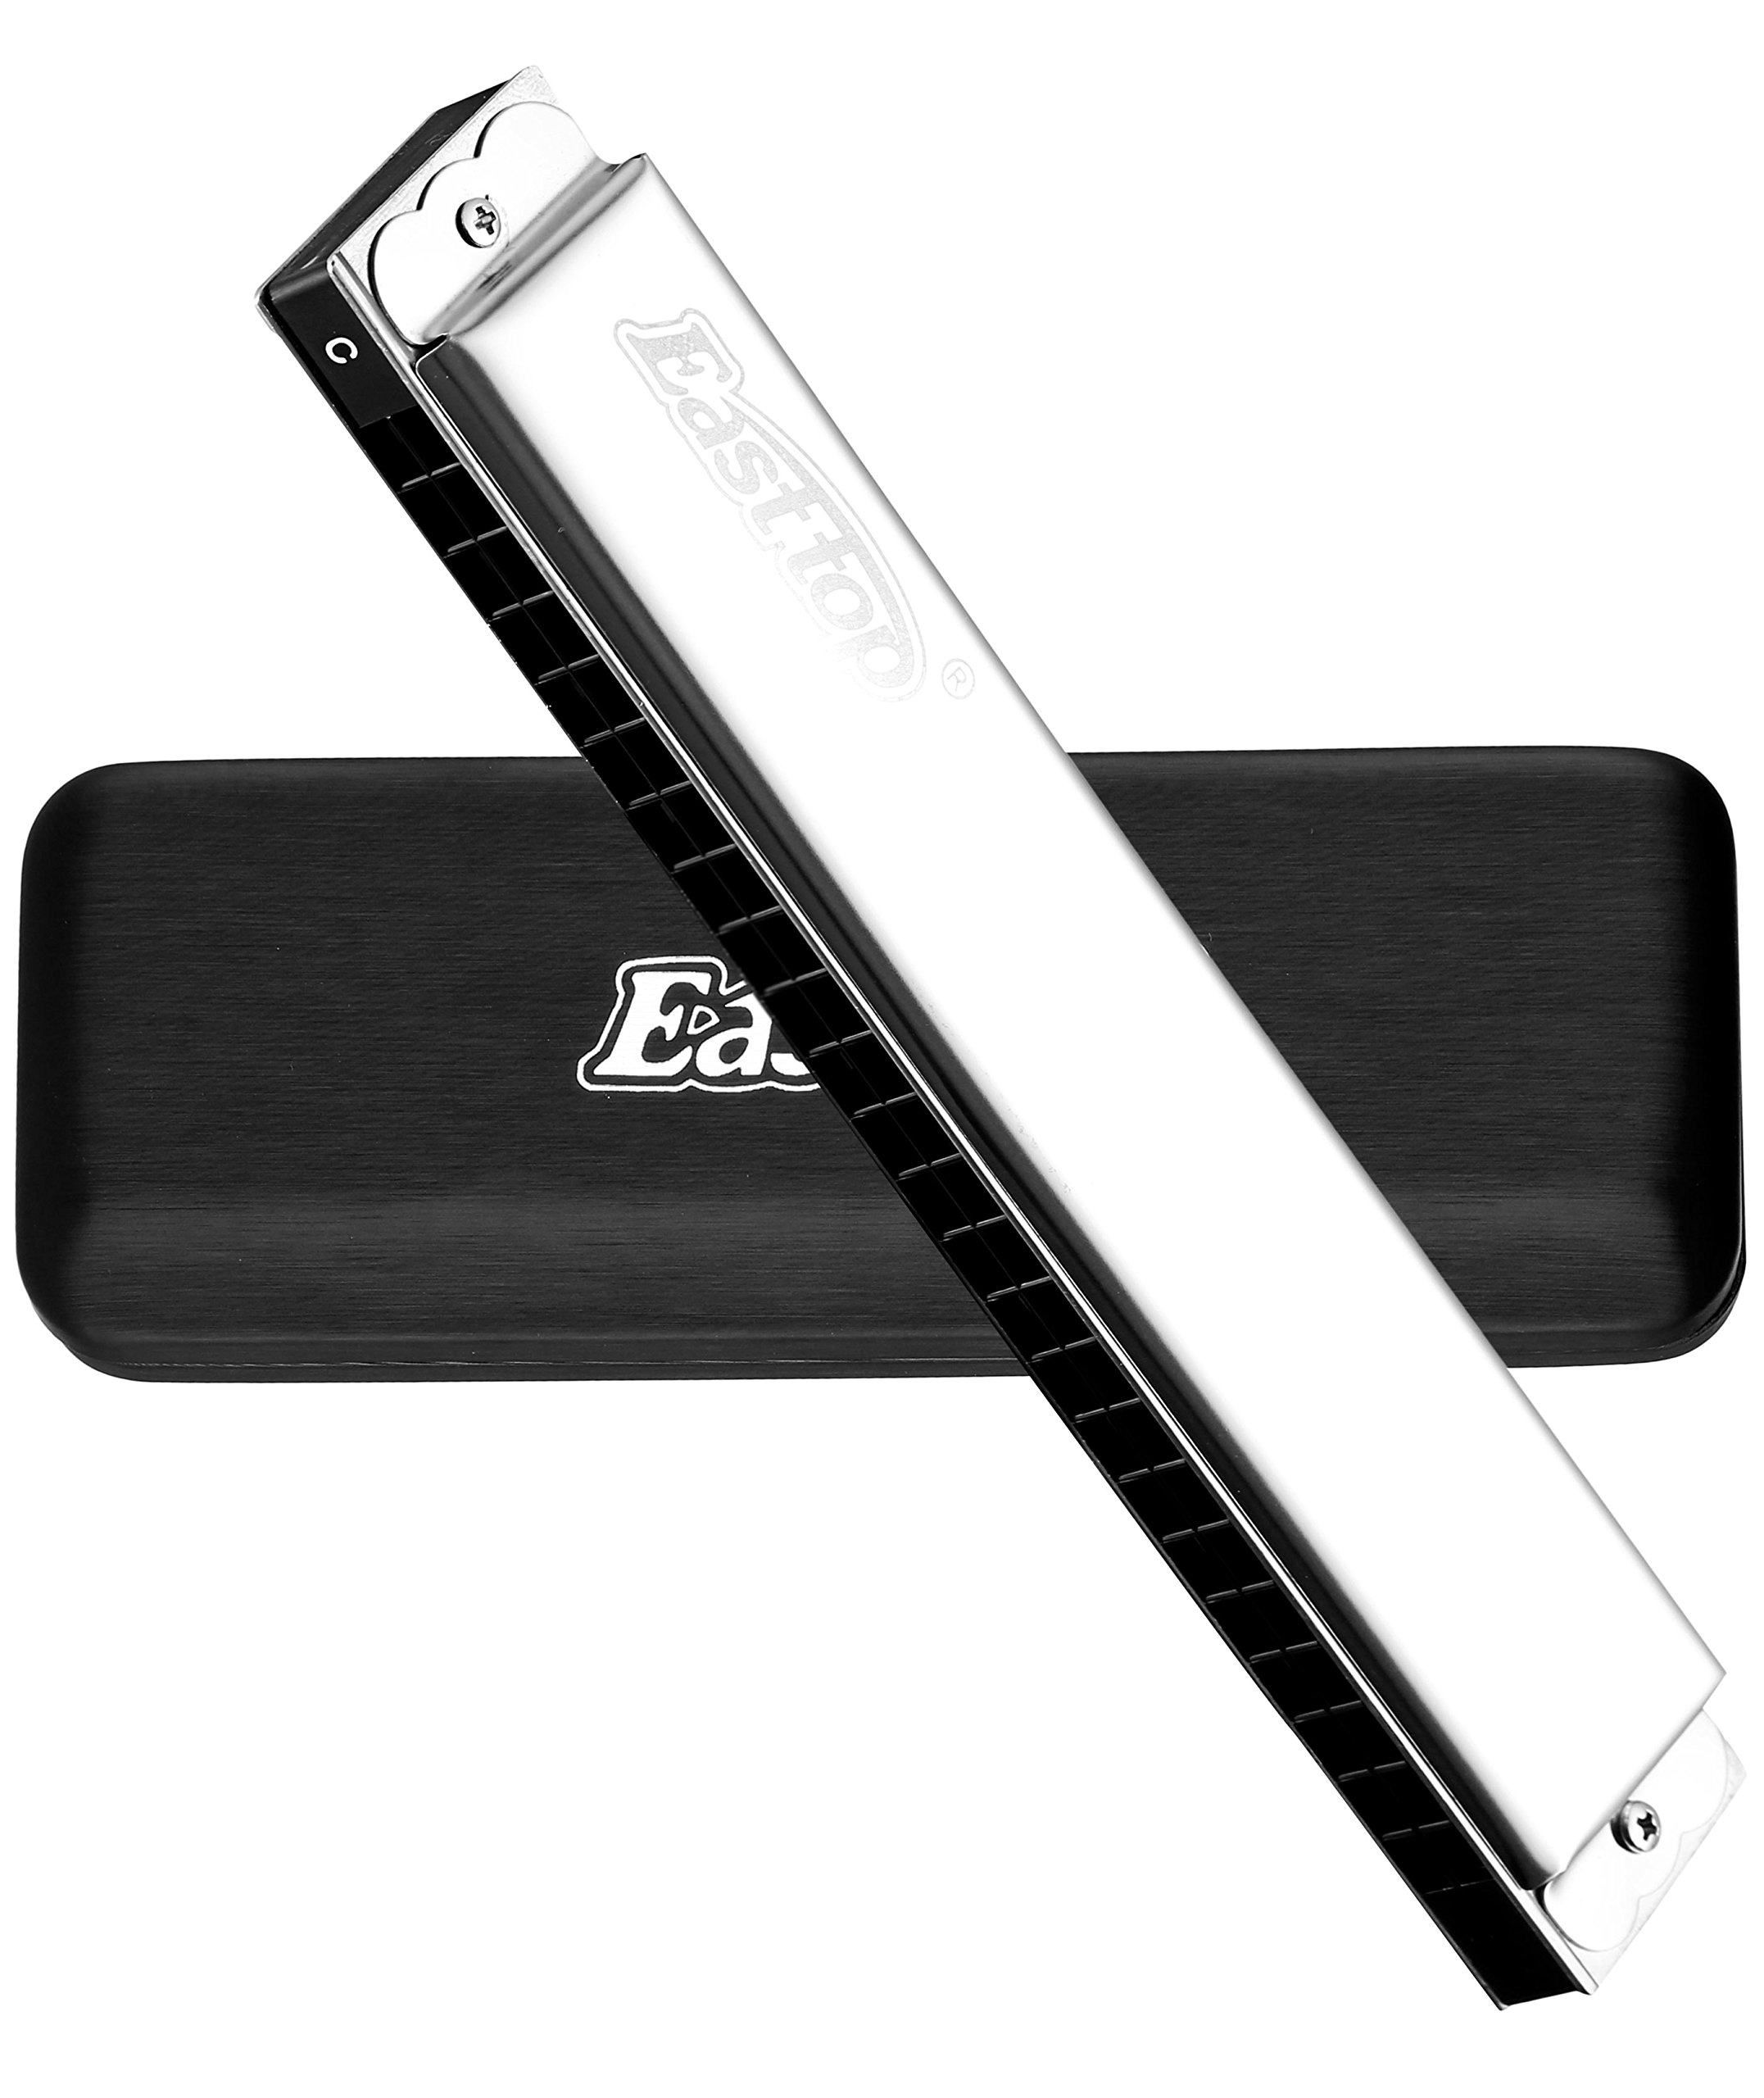 Easttop T2403 Mouth Organ Harmonica (Key of C) product image